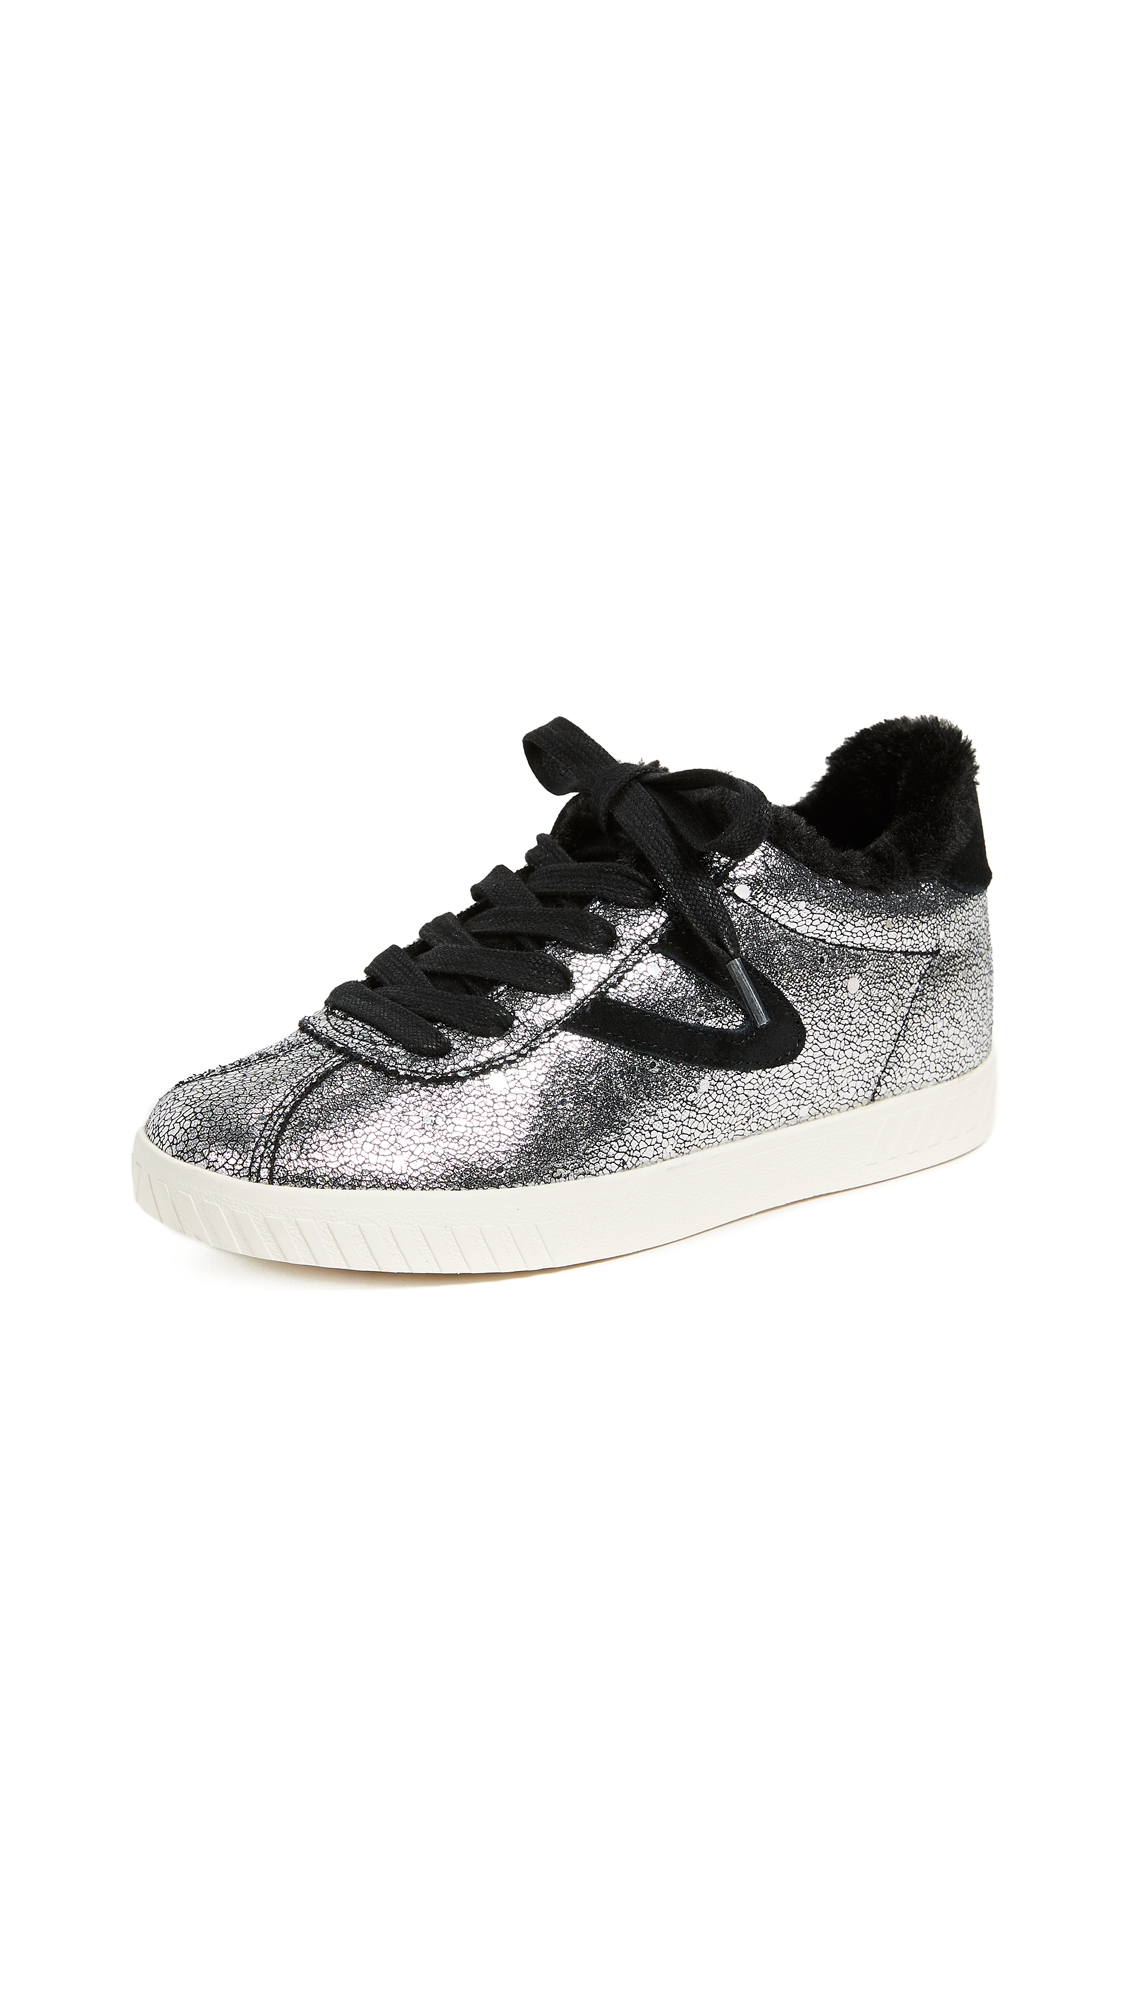 Tretorn Callie Lace Up Metallic Sneakers - Silver/Black